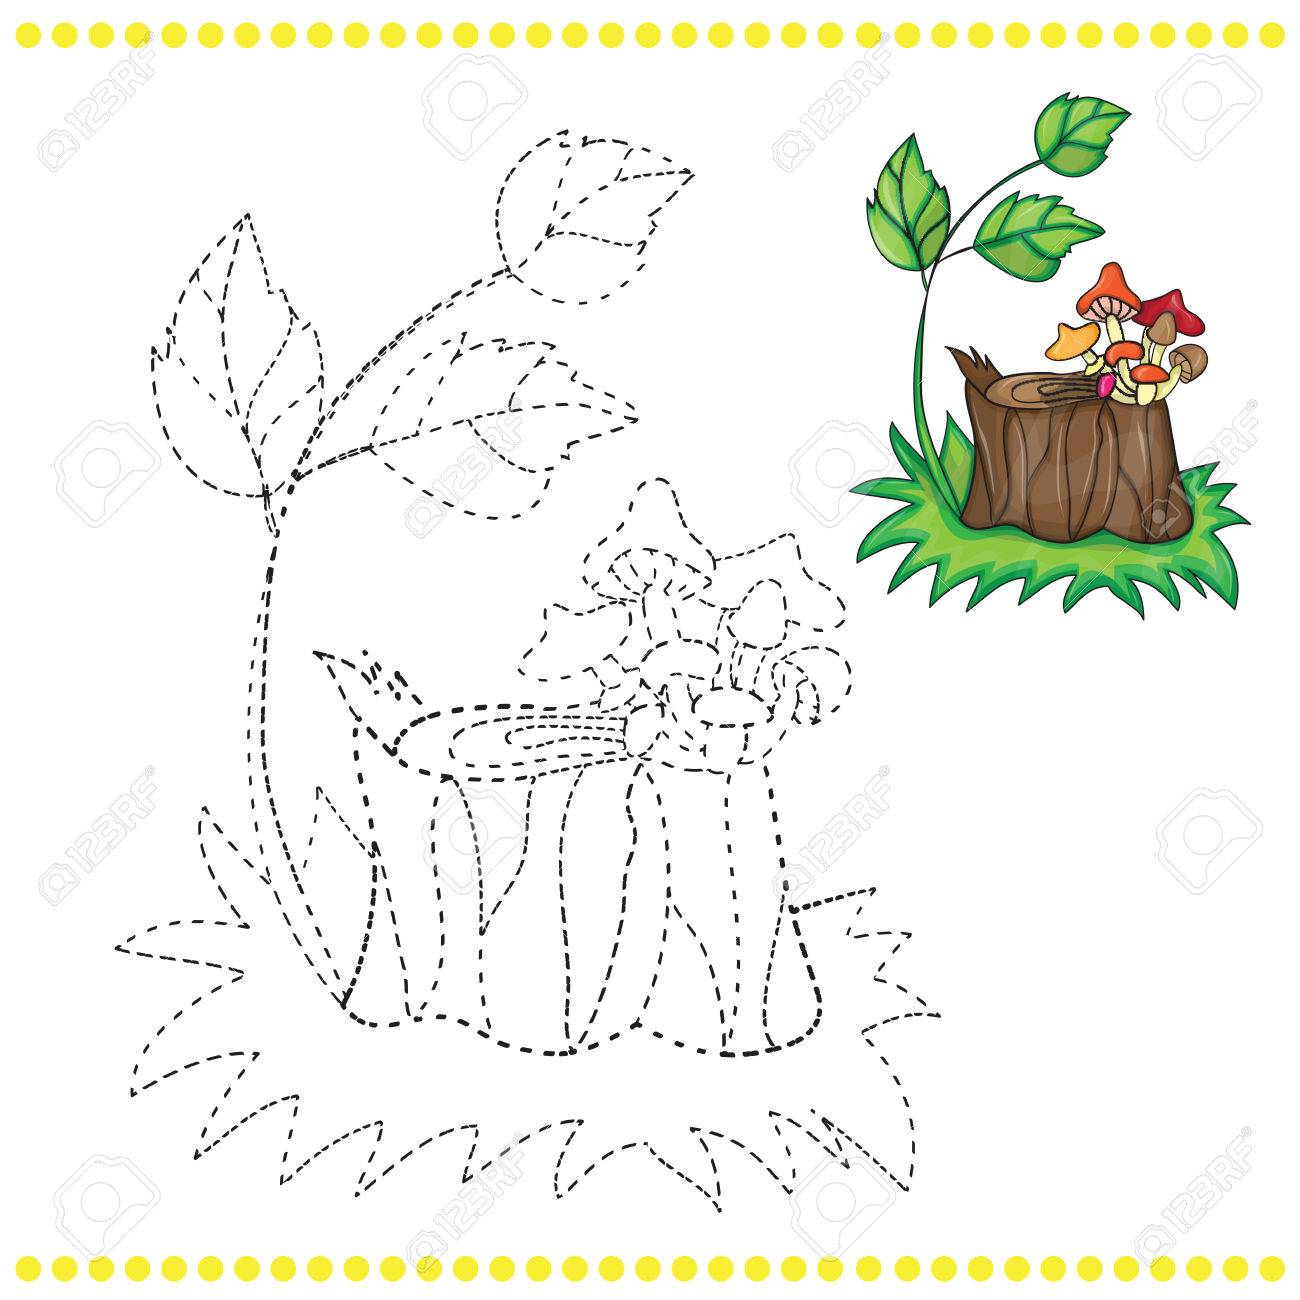 connect the dots and coloring page grass stump and mushrooms